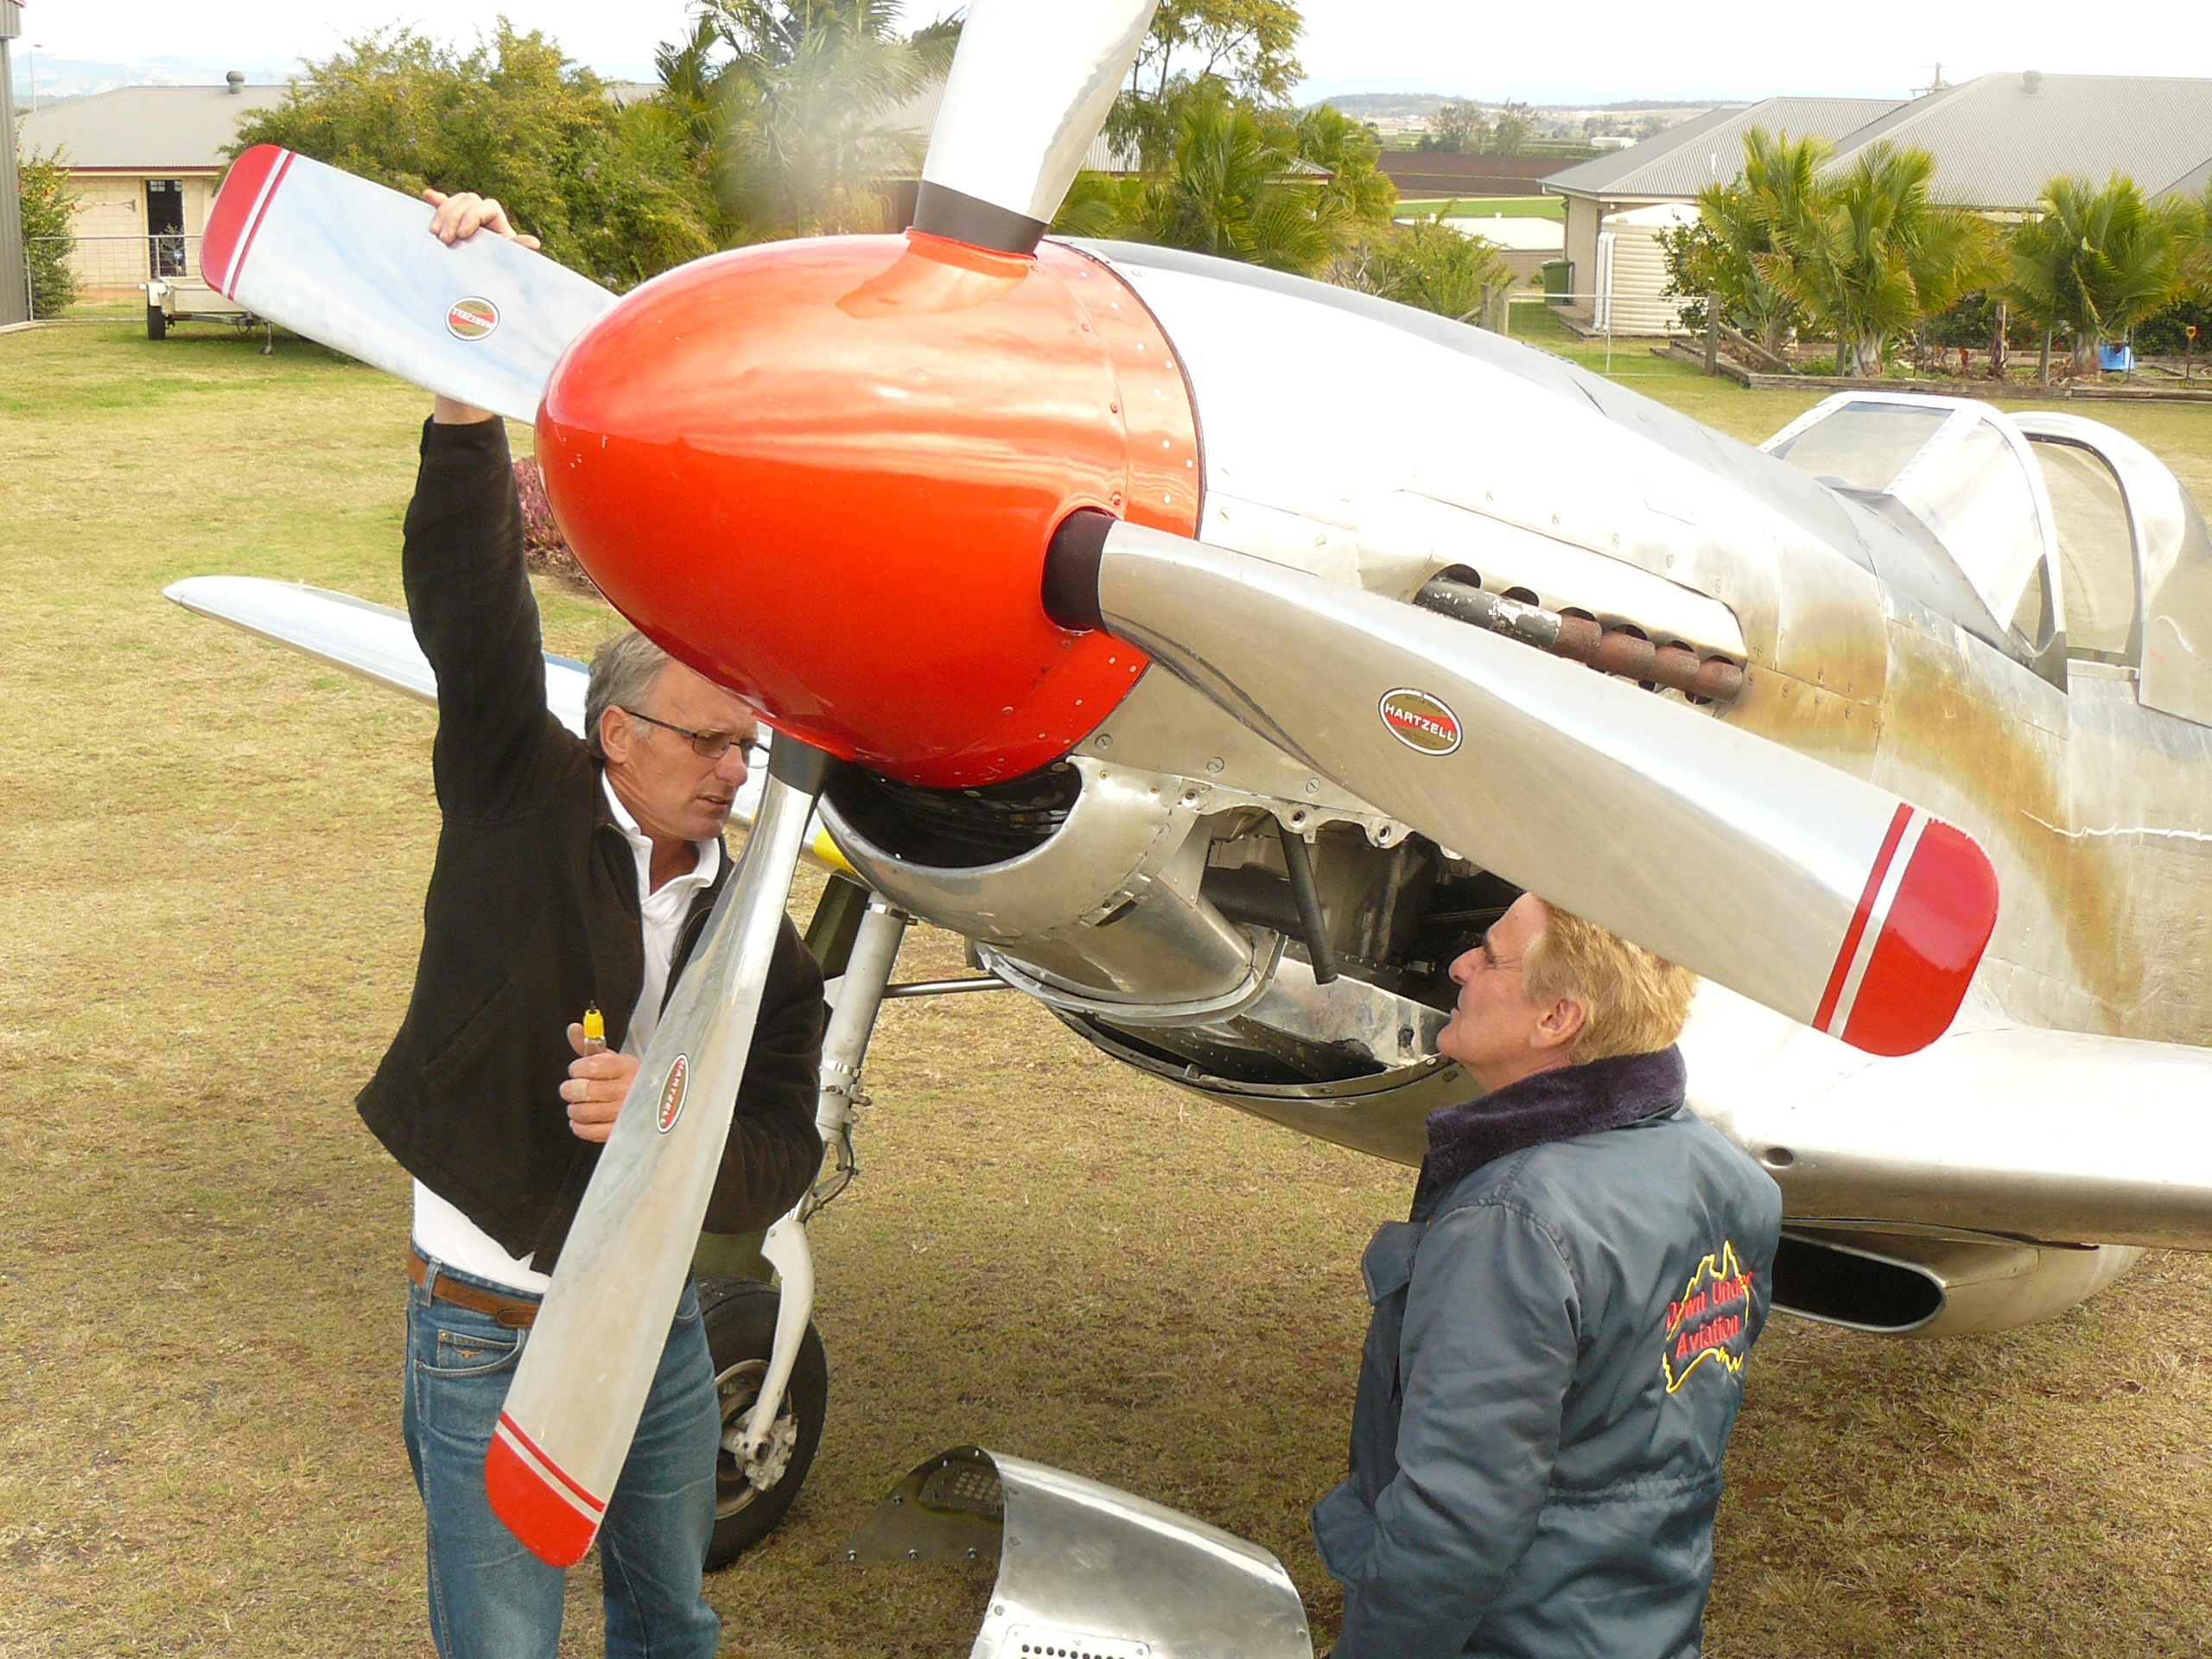 Zenith Aircraft Are Known To Be Builder Friendly And The Pany Offers Hands On Factory Works Ch 650 Low Wing 701 Utility 750 Stol